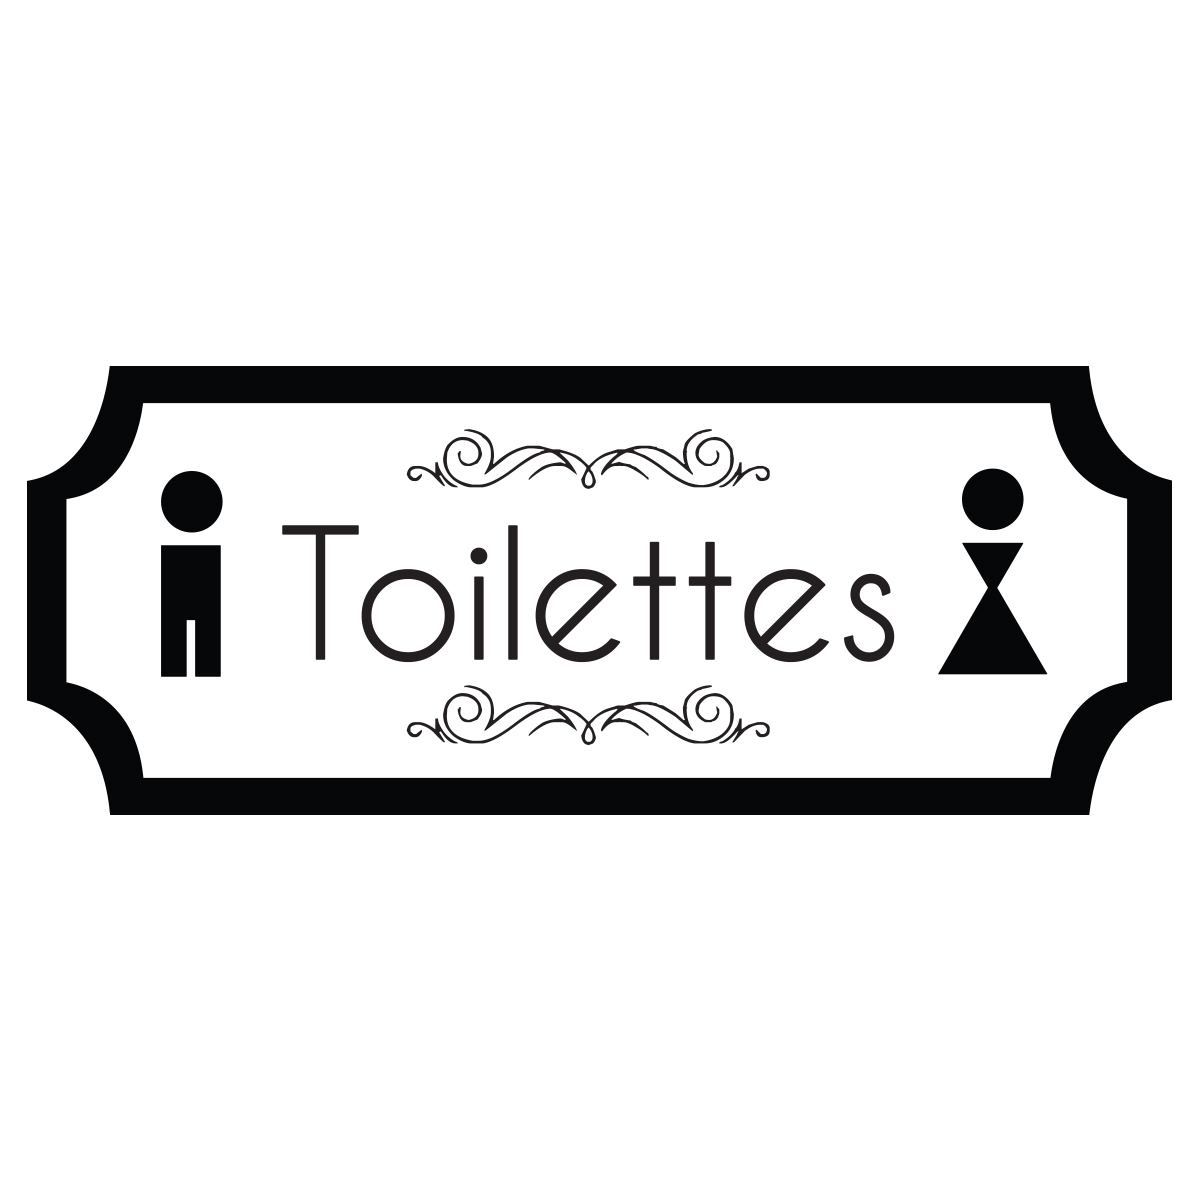 Sticker porte toilettes porte design stickers toilettes for Stickers pour porte toilettes